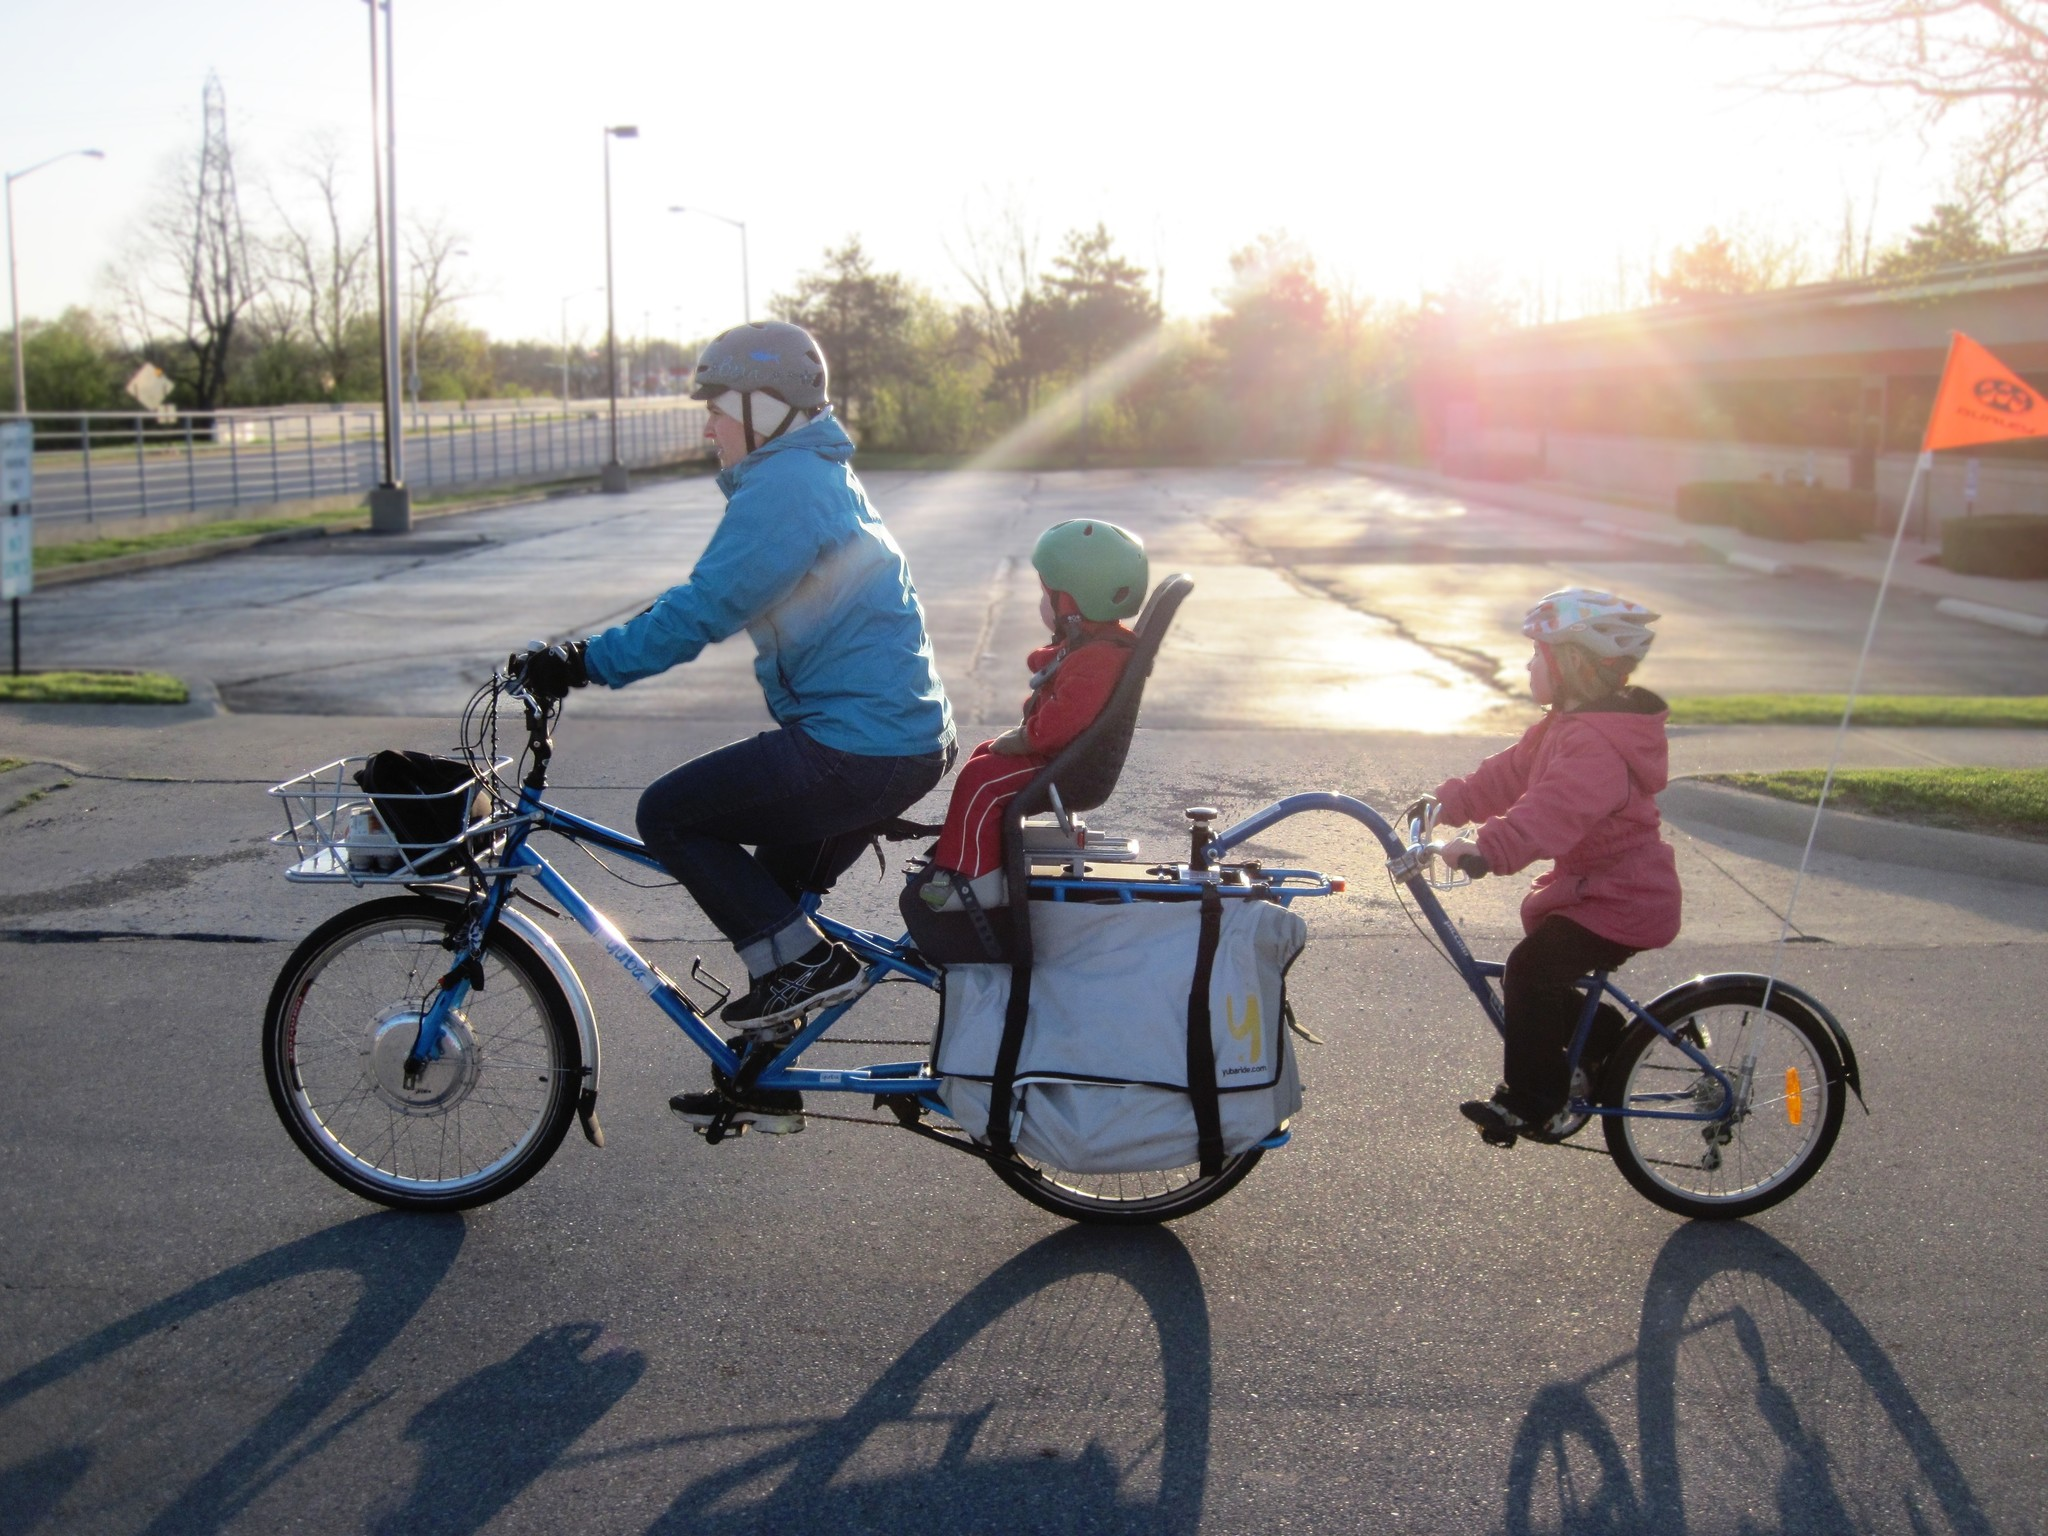 5 Reasons Riding Bikes is Great for Your Family